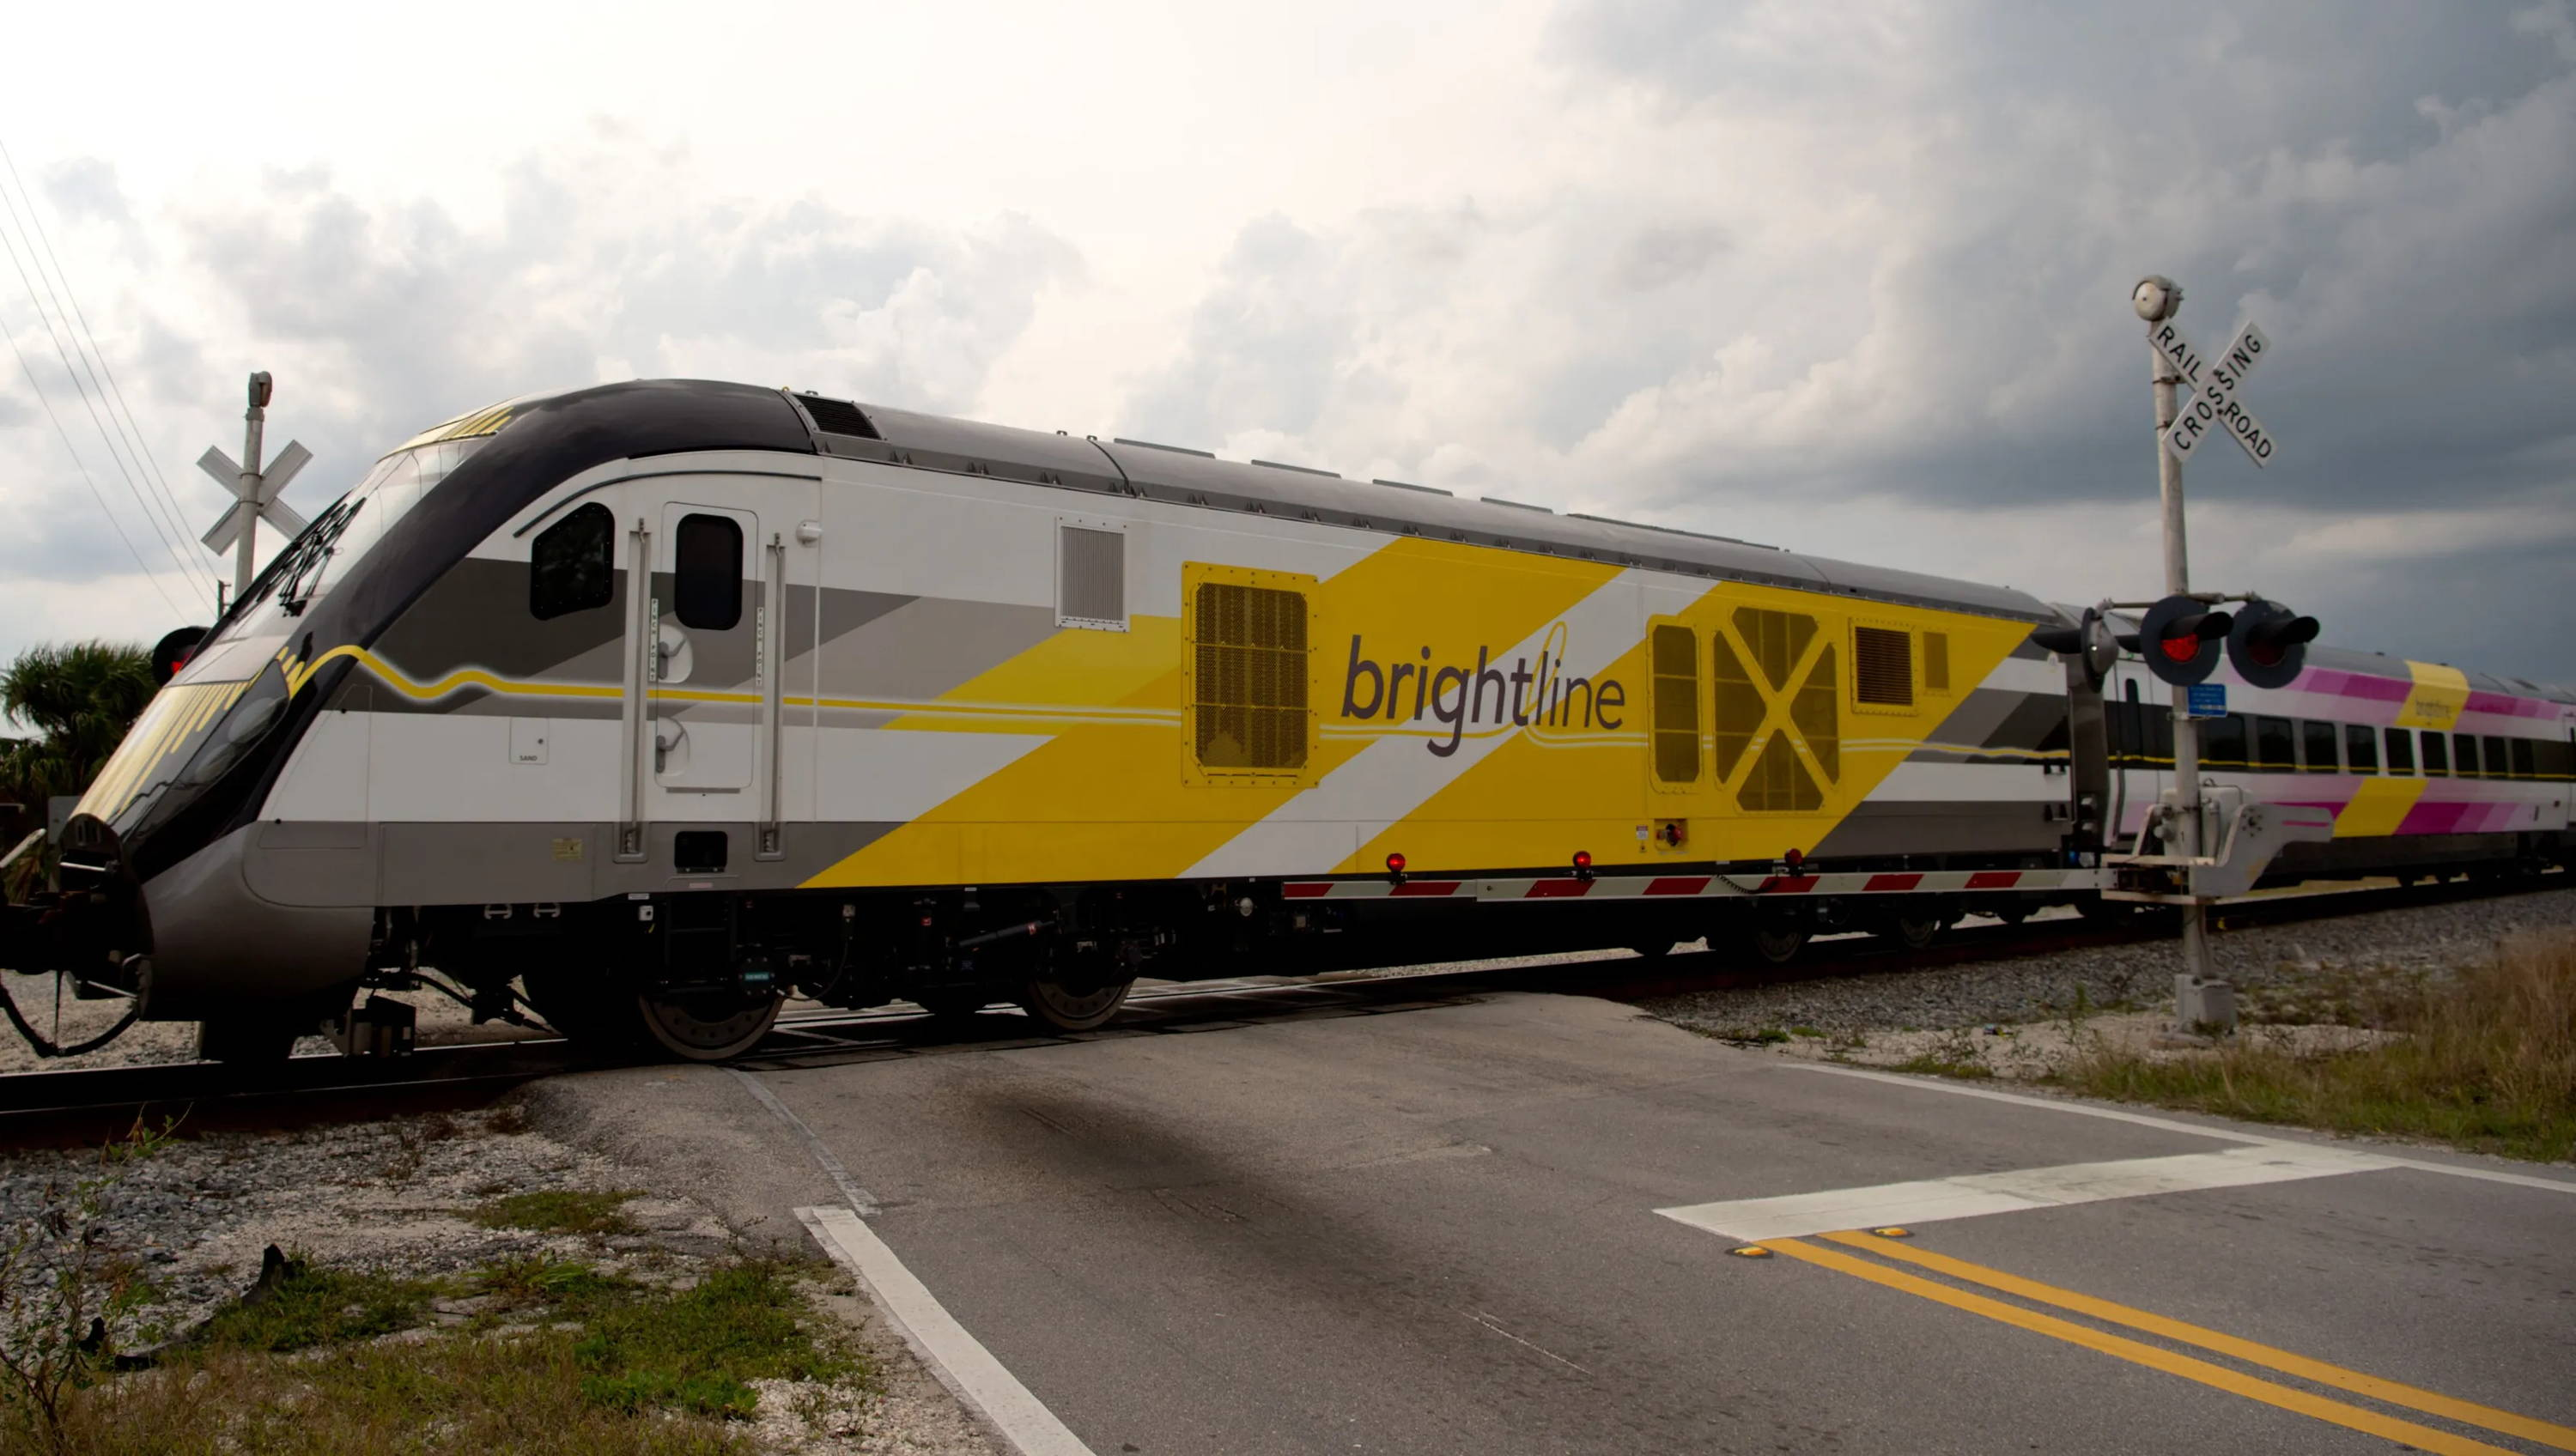 Brightline Railway Reaches Deal With Disney to Build Disney Springs Station